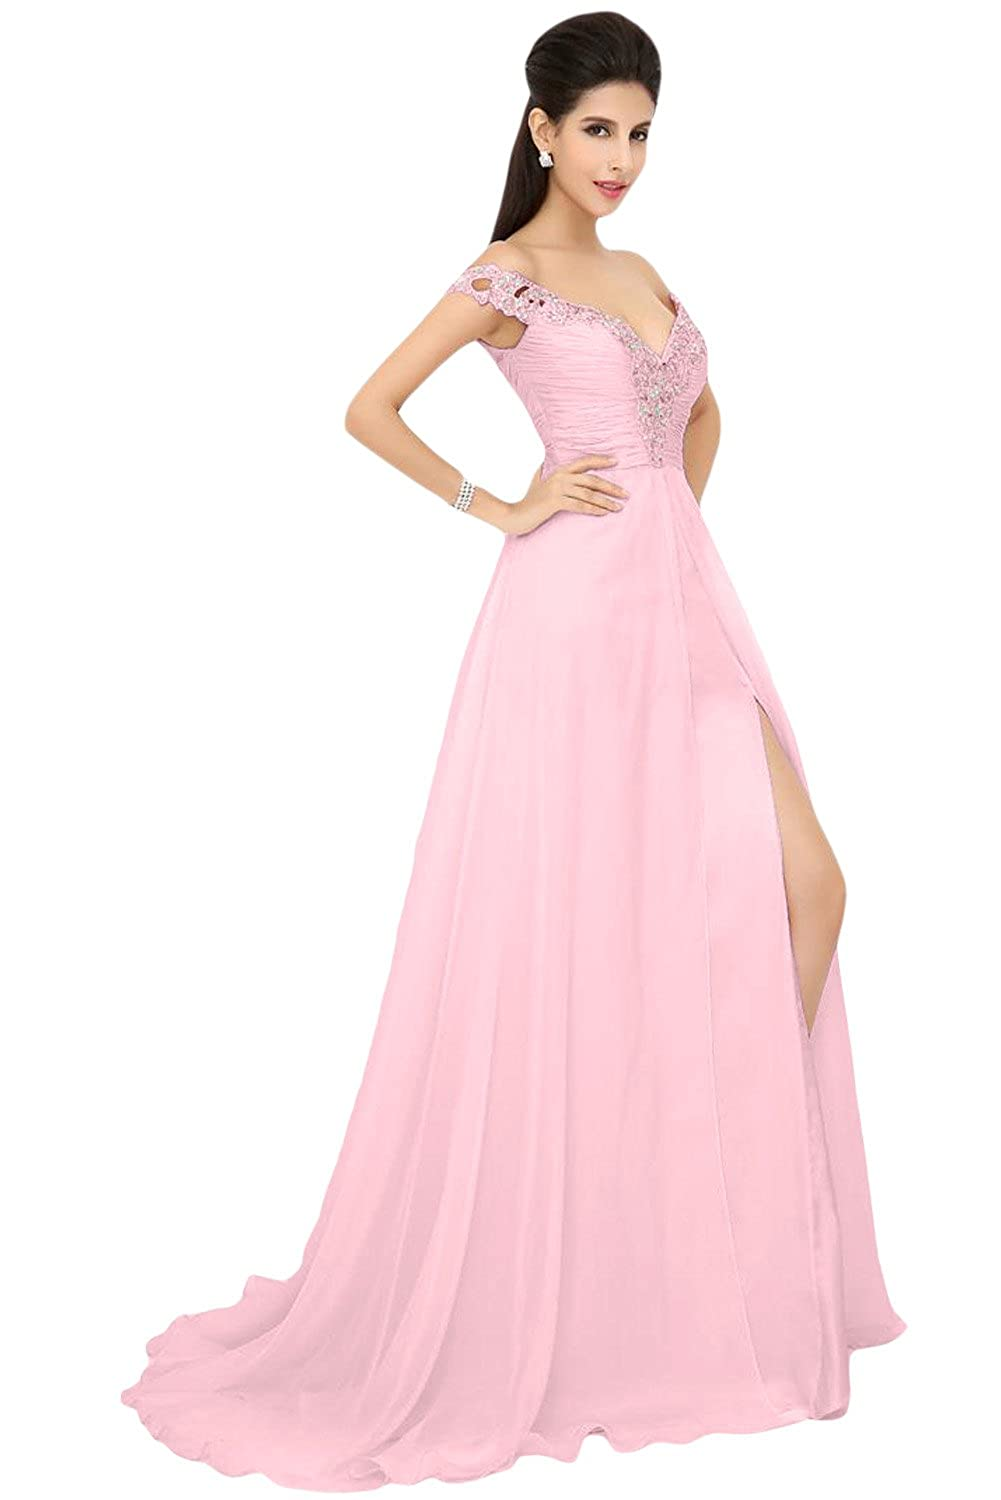 Pink wedding dresses lots of wedding for Amazon cheap wedding dresses